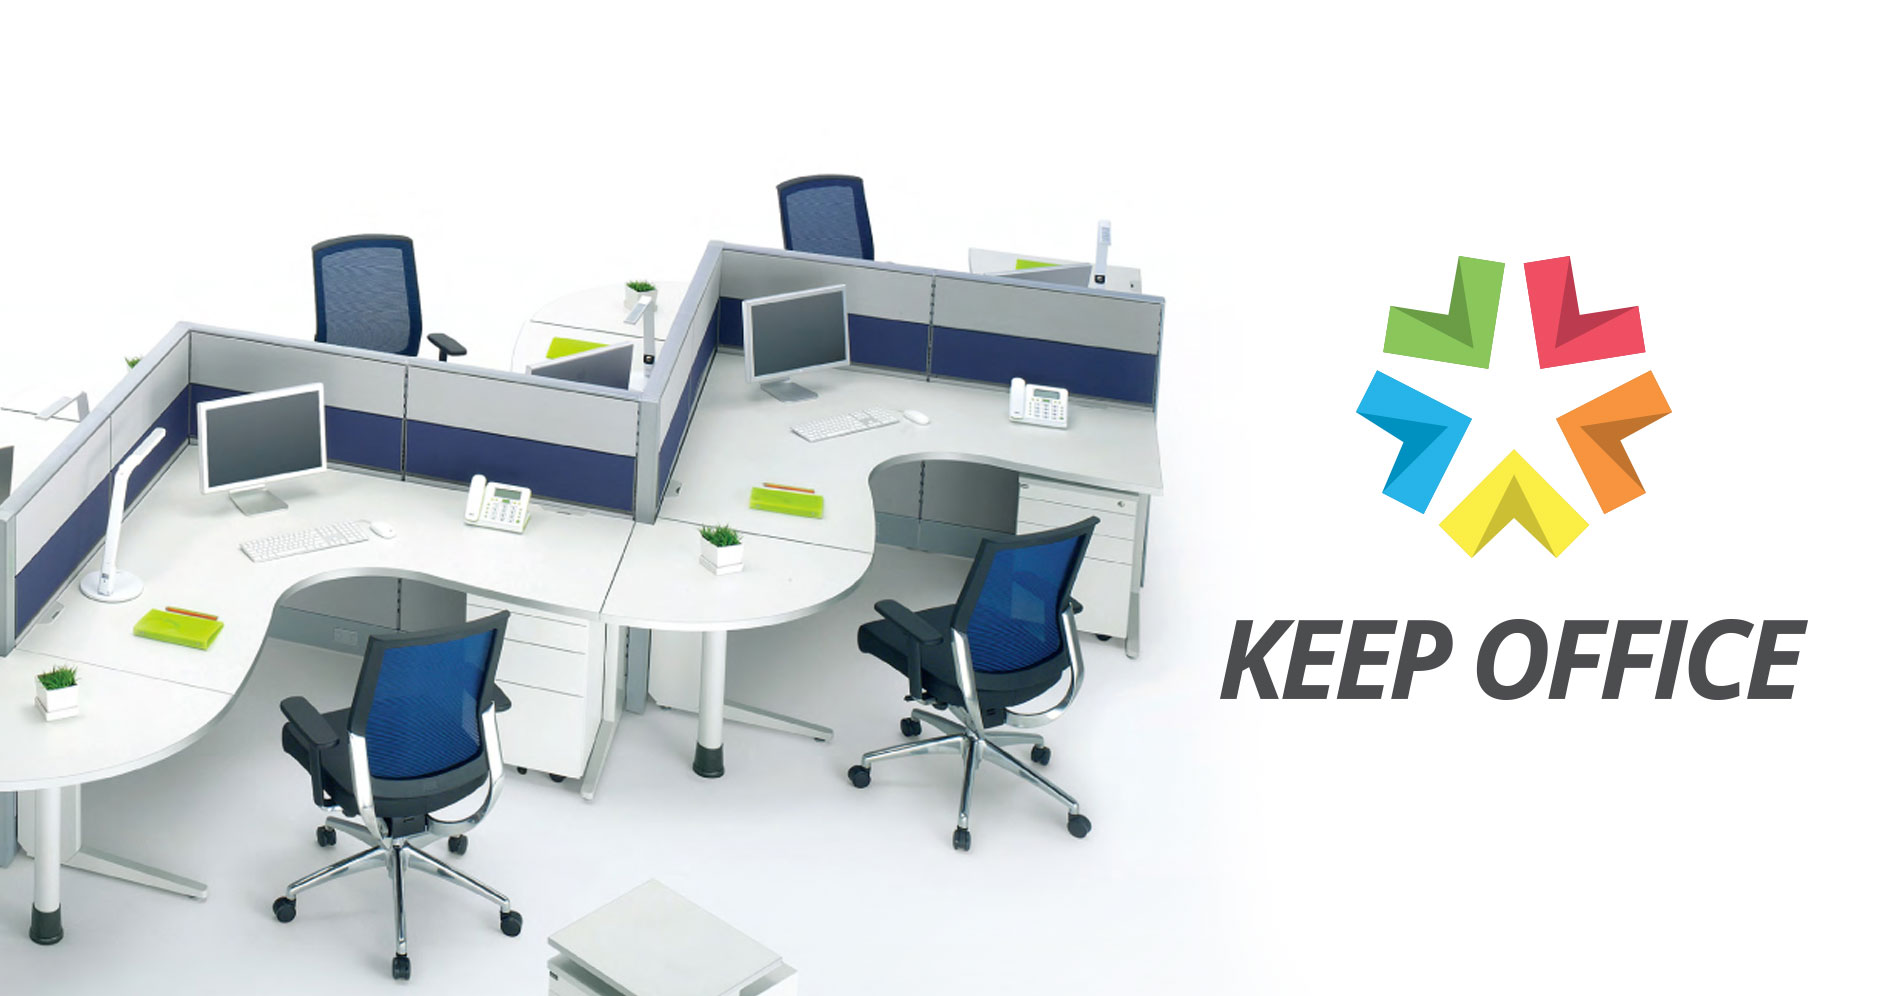 Keep Office office furniture